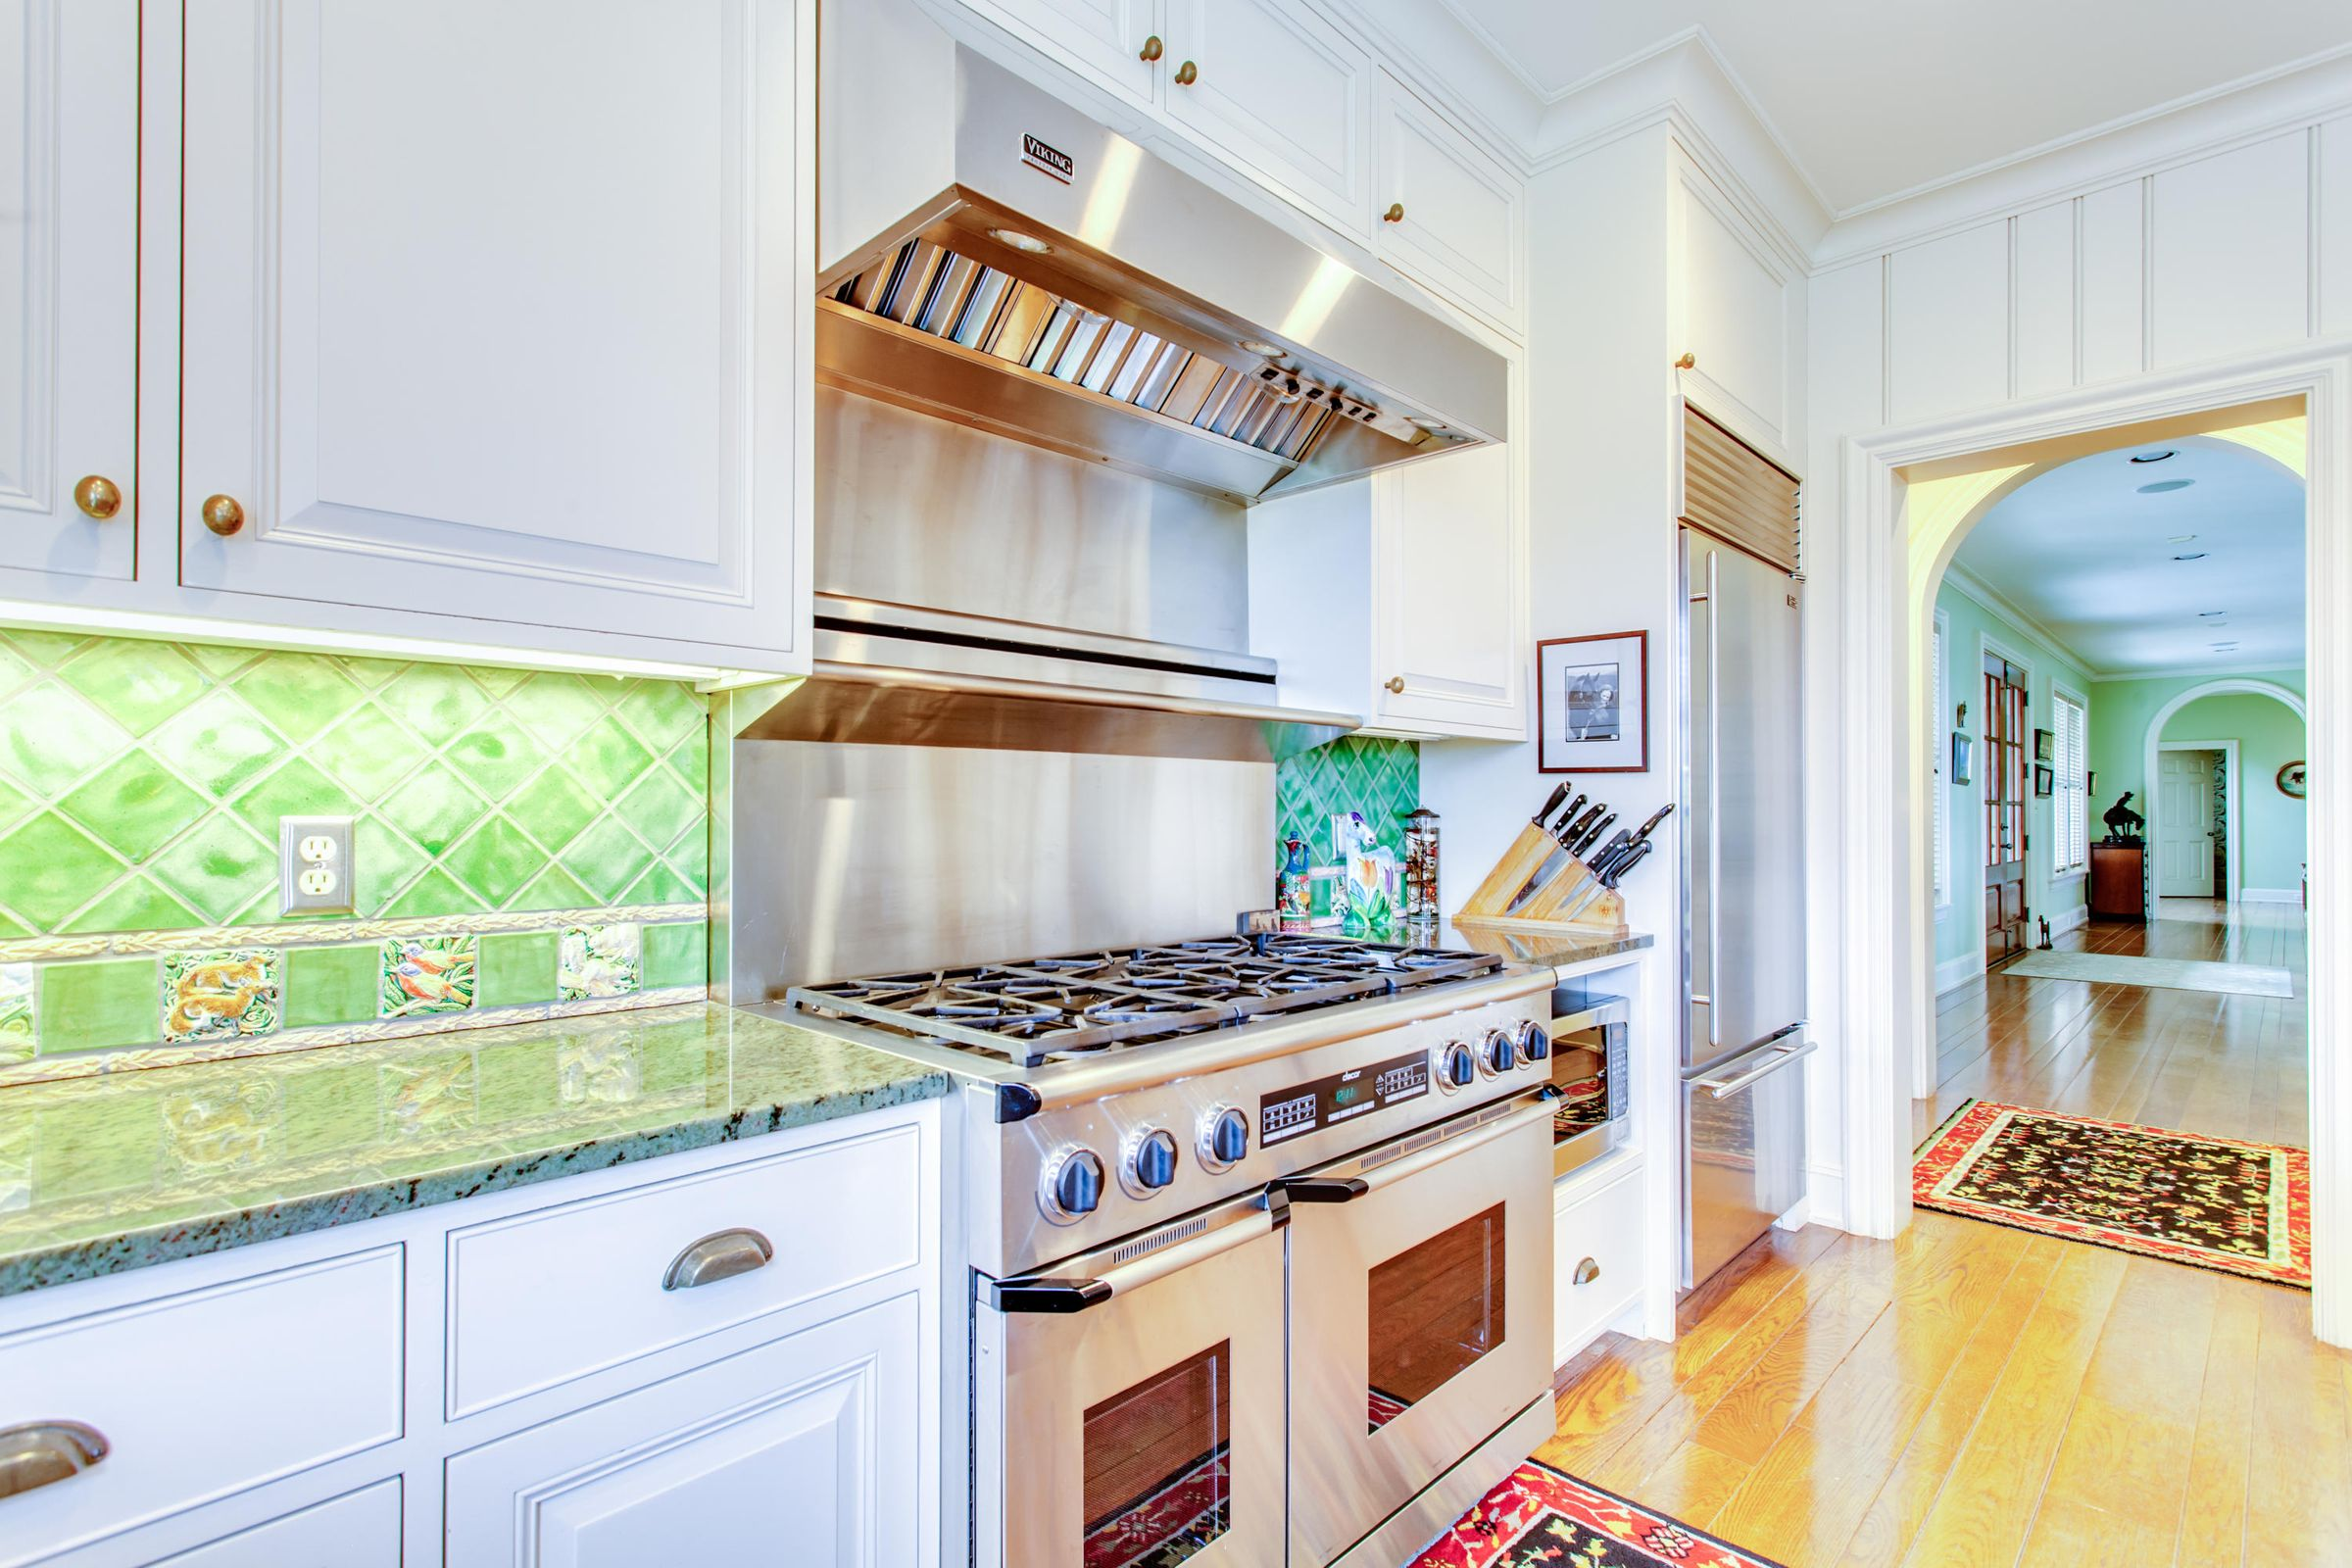 Kitchen to wet bar/butlers pantry